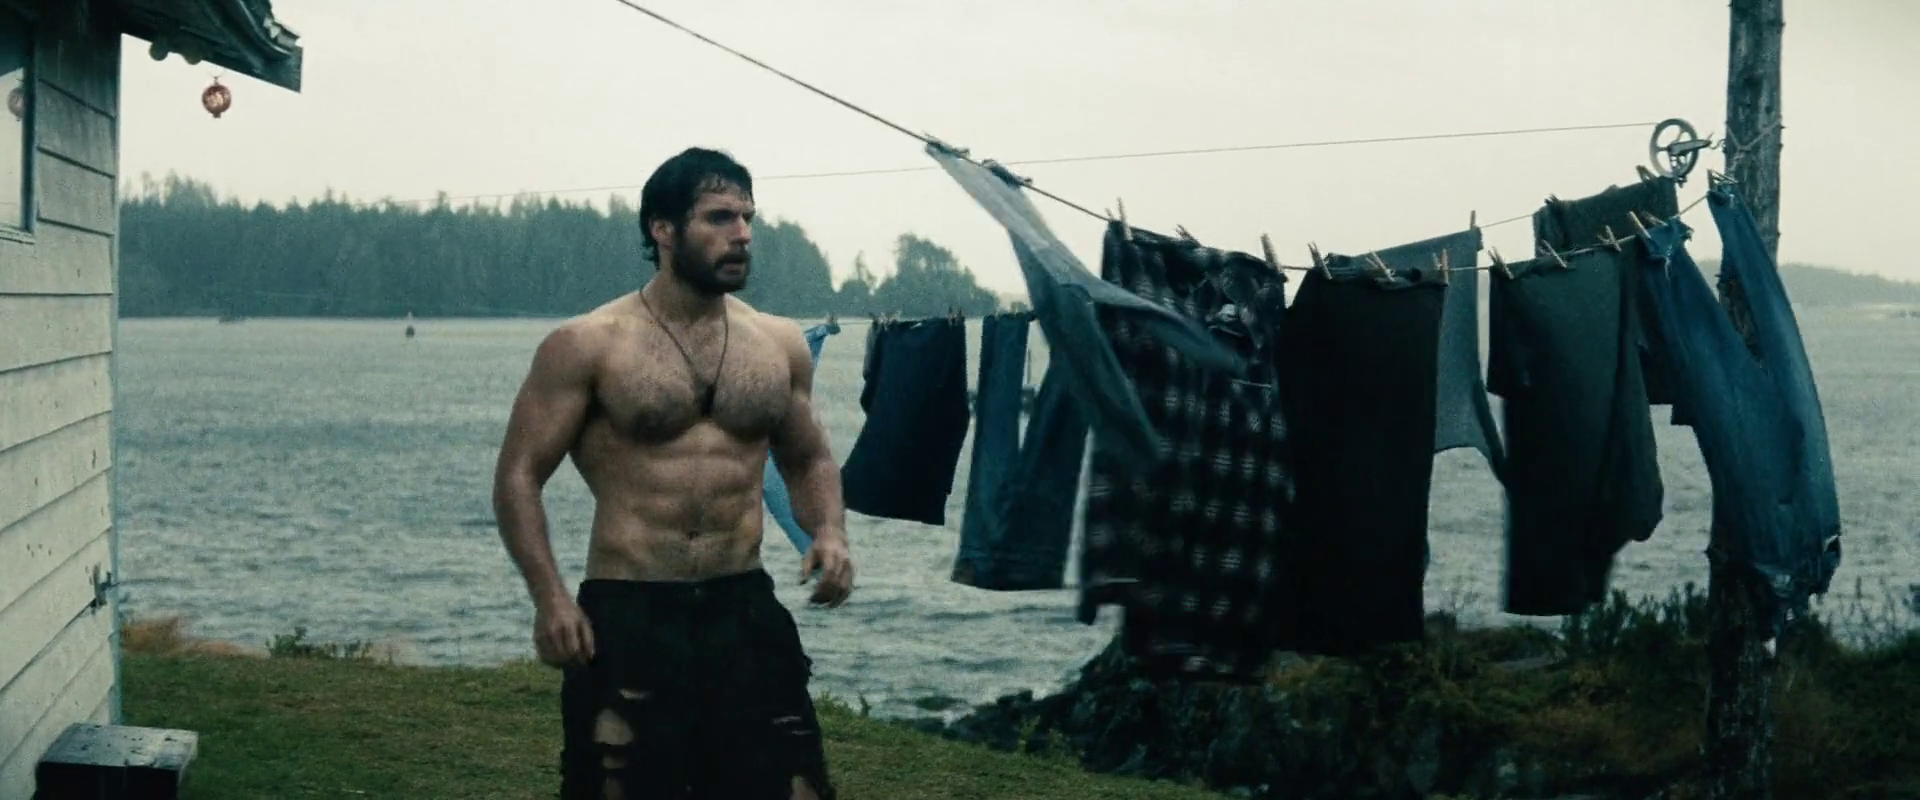 Henry Cavill as Kal-El/Clark Kent/Superman shirtless in Man of Steel